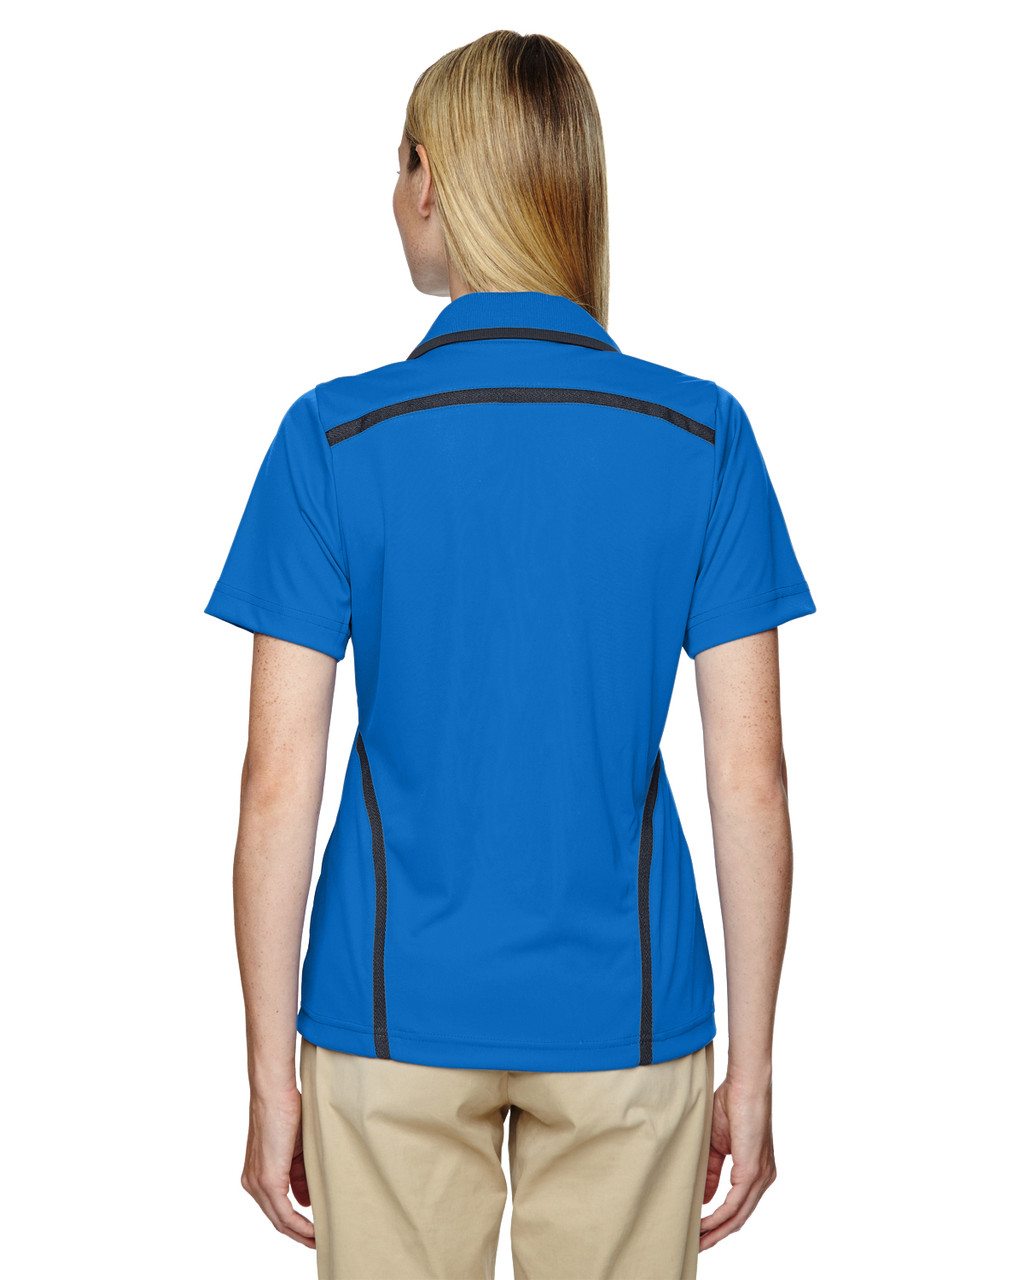 Light Nautical Blue - Back, 75118 Ash City - Extreme Eperformance Propel Interlock Polo Shirt with Contrast Tape   BlankClothing.ca